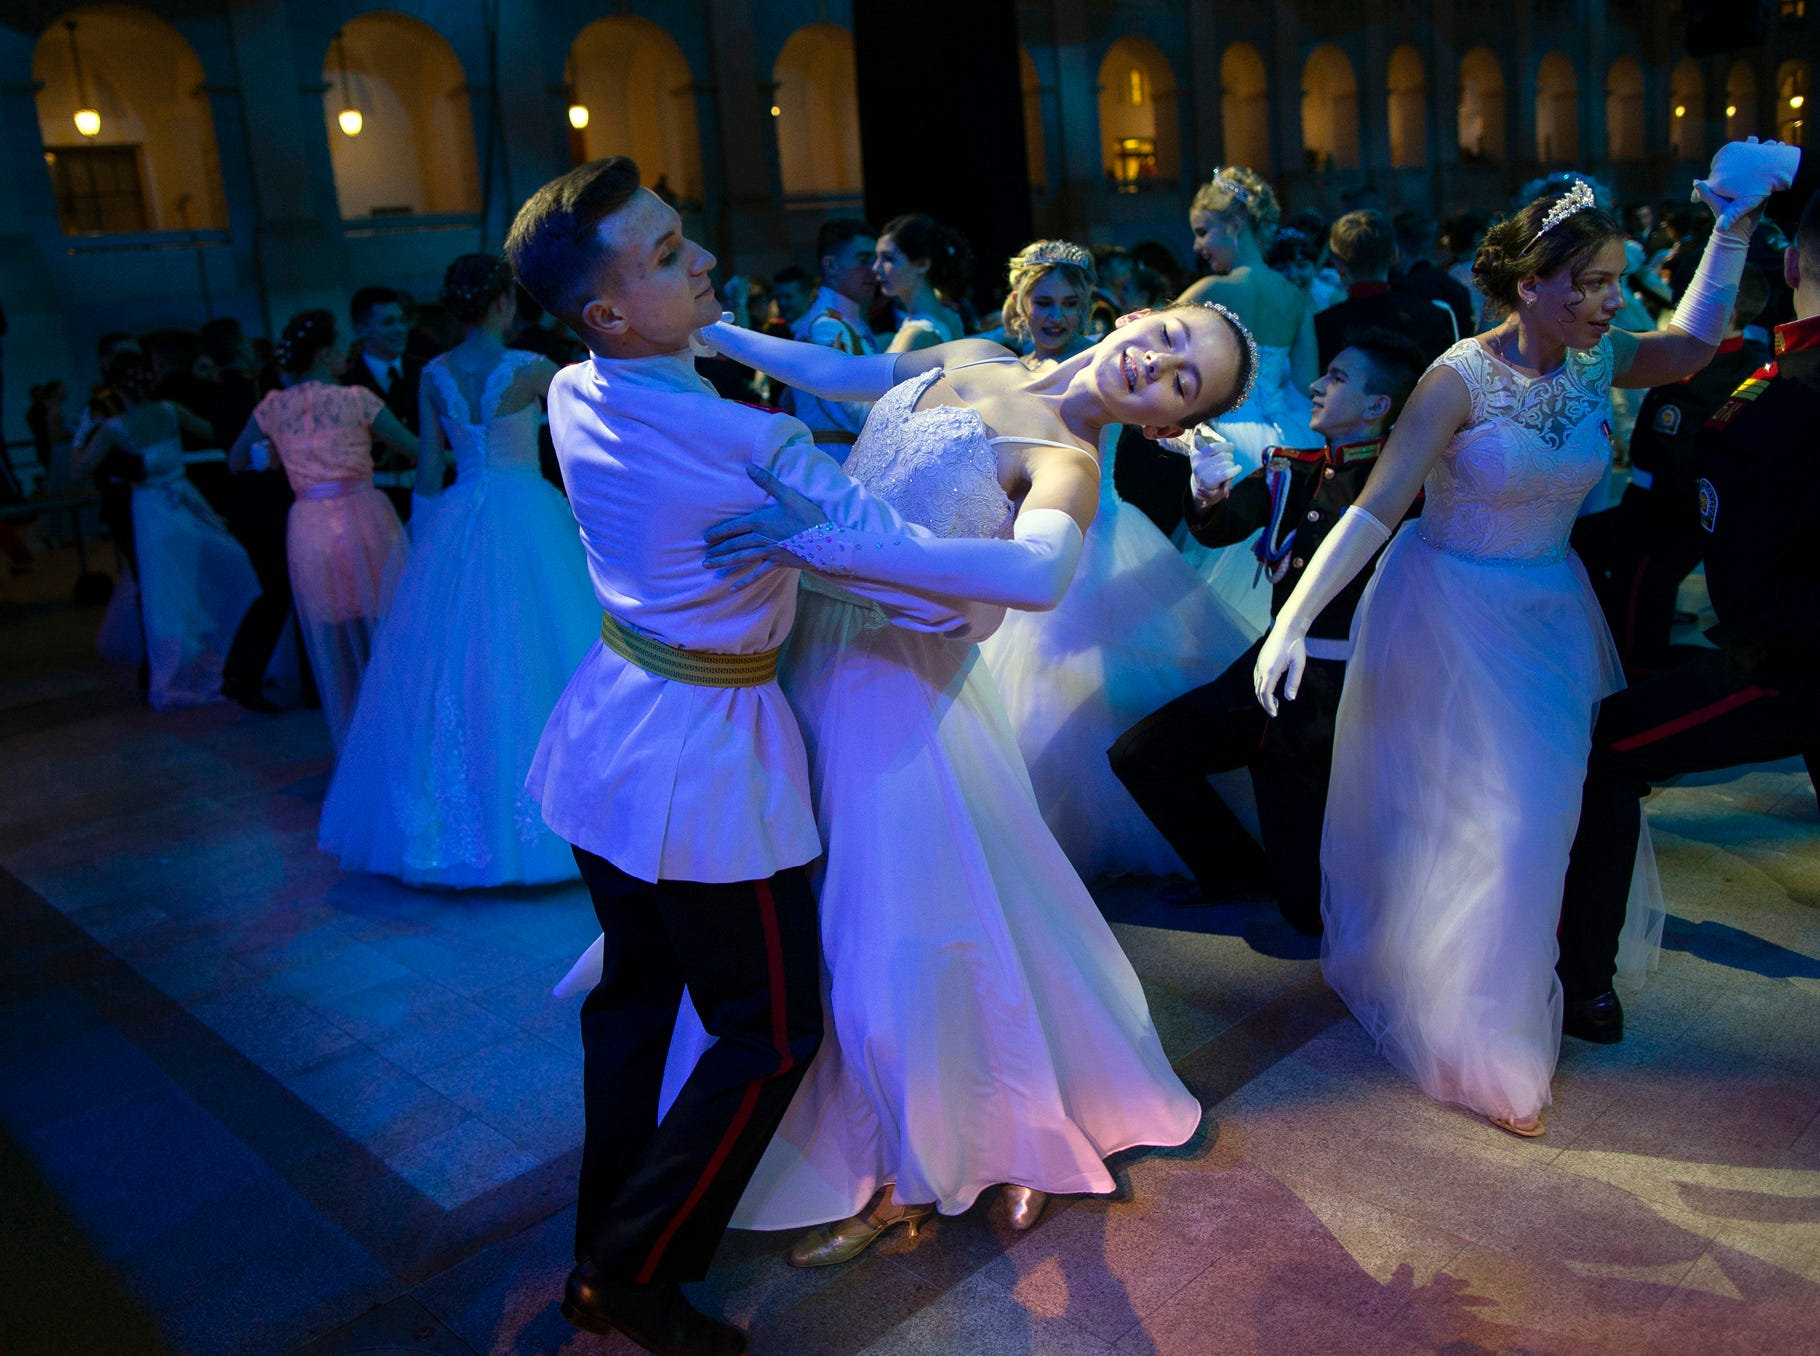 Participants of a ball for students of military schools dance during an annual ball in Moscow, Russia, Tuesday, Dec. 11, 2018. In the revival of a czarist tradition, more than 1,000 students both from military and general schools travelled from all over Russia to Moscow to take part in the annual ball. (AP Photo/Alexander Zemlianichenko)